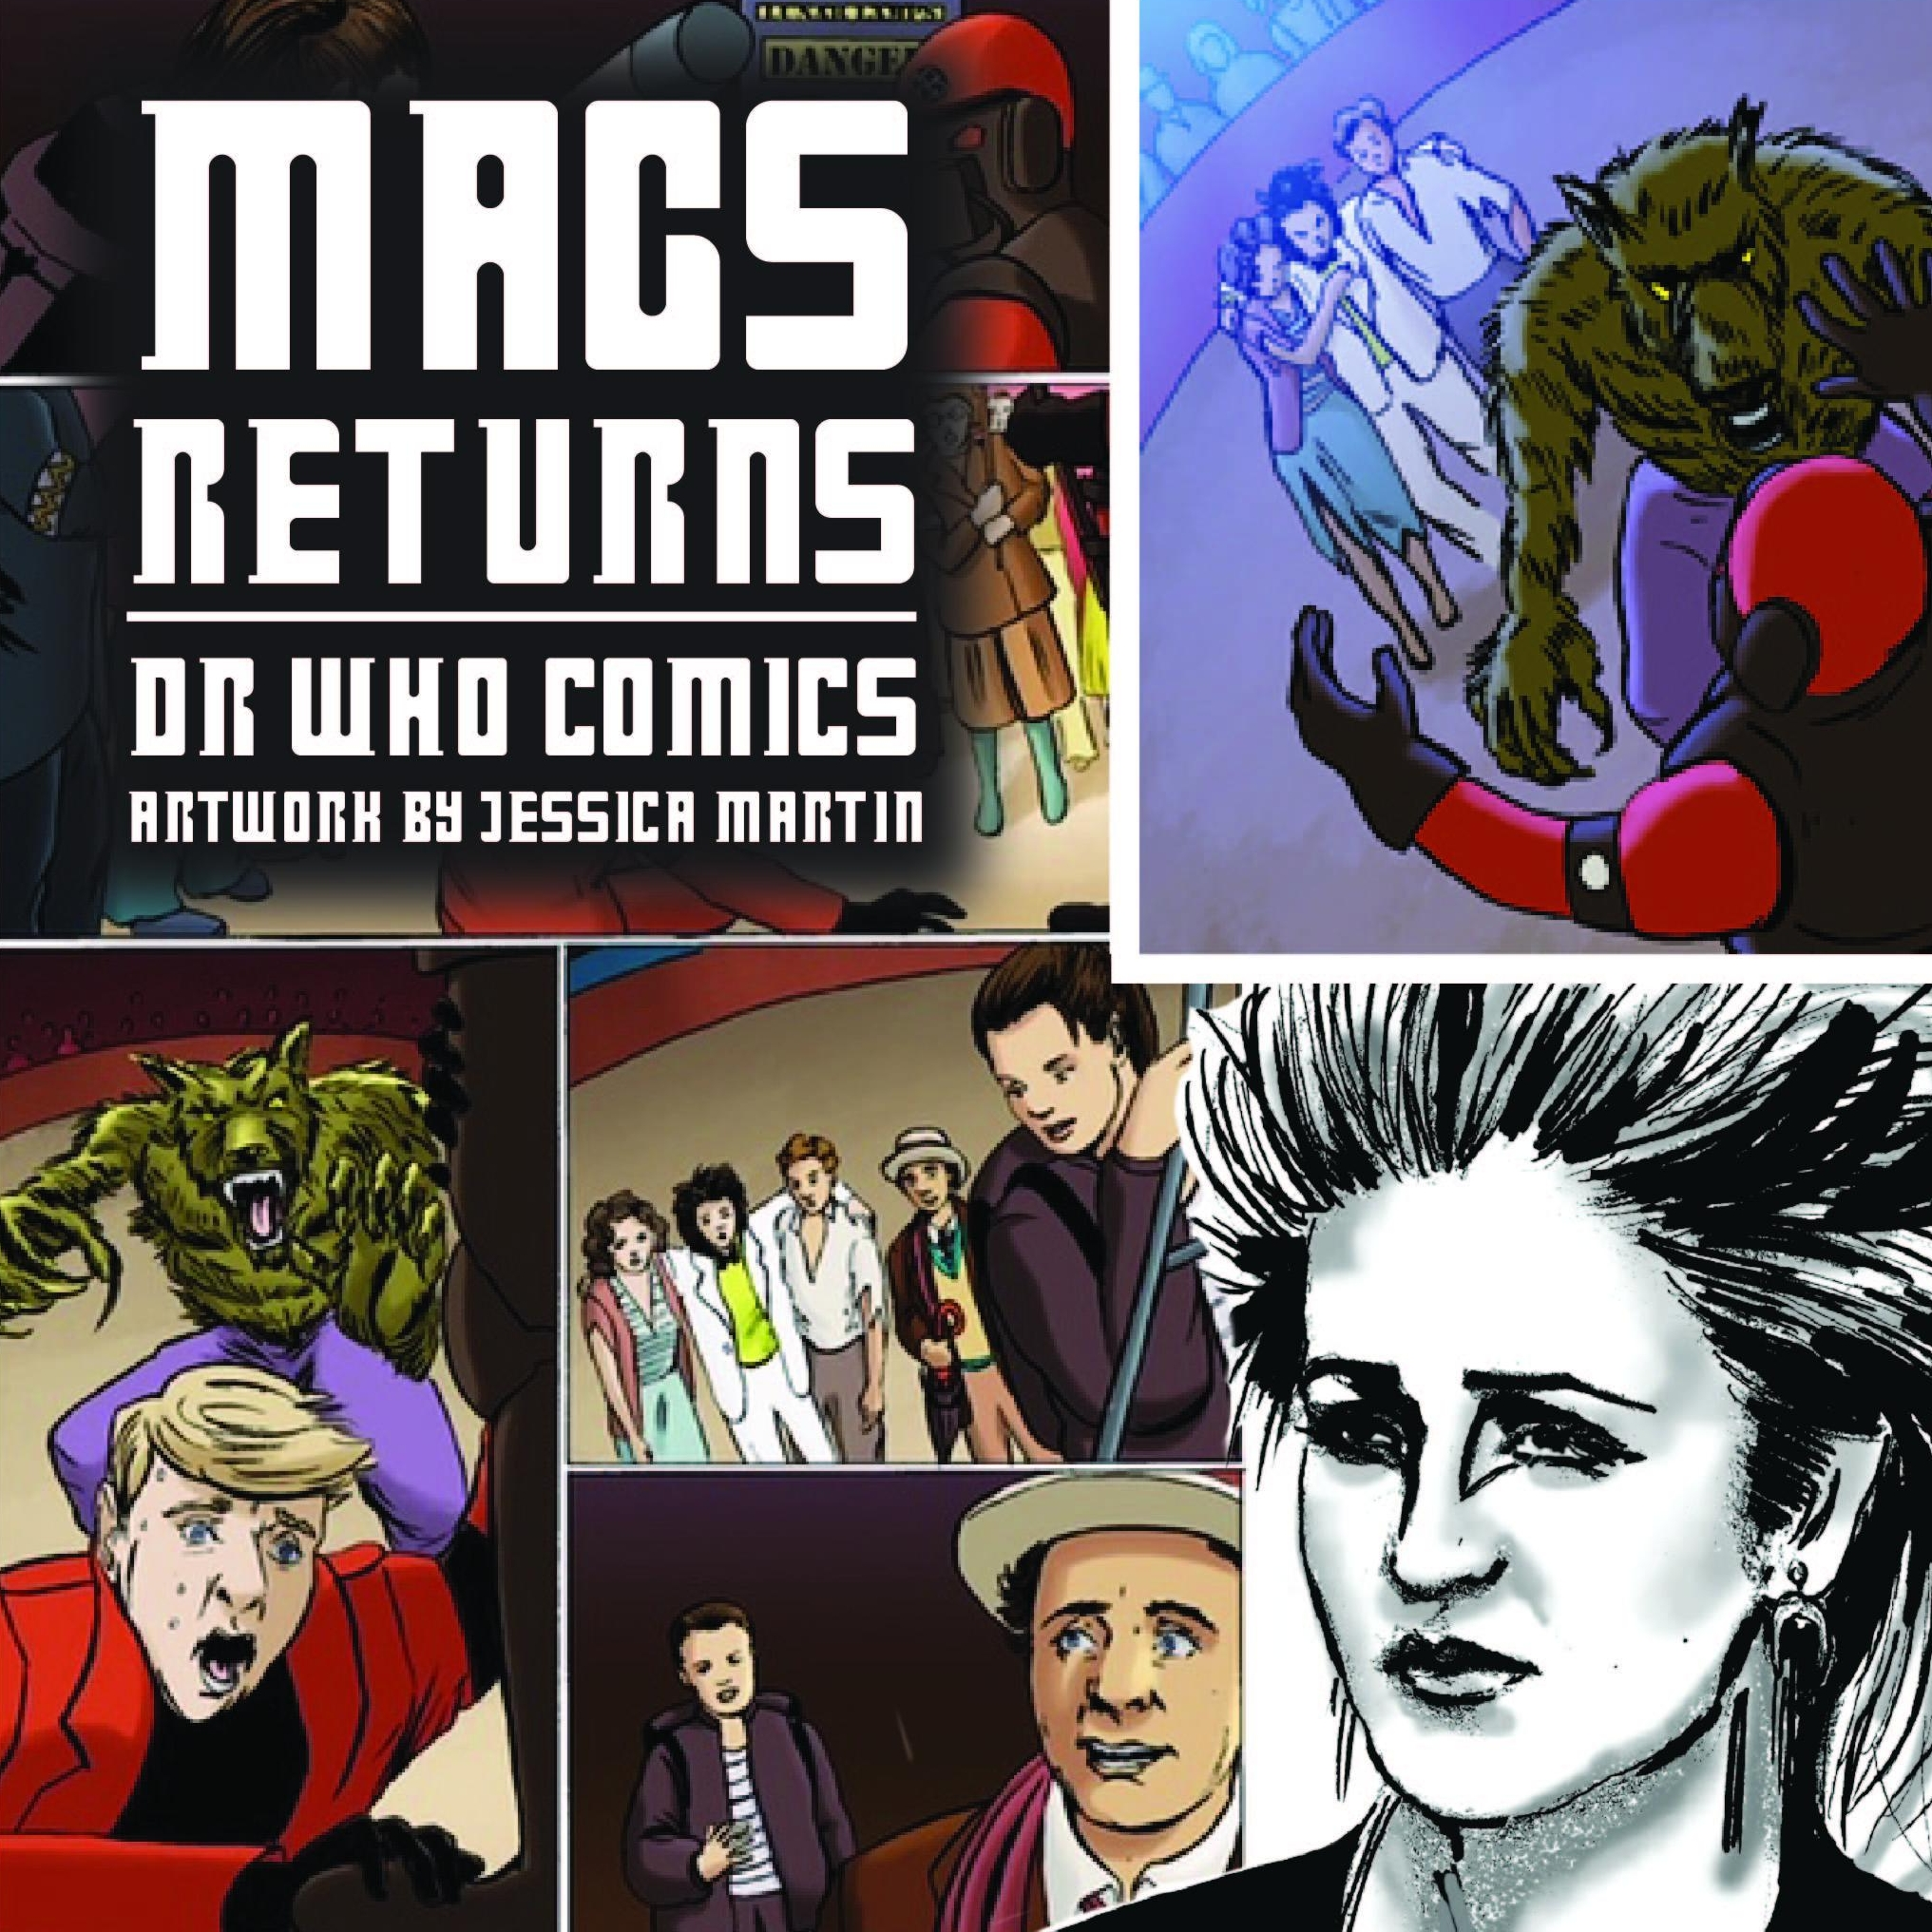 Dr Who comics - Jessica's artwork was featured in Dr Who comics 'the seventh doctor' series, in stories featuring Mags, her character from the series.